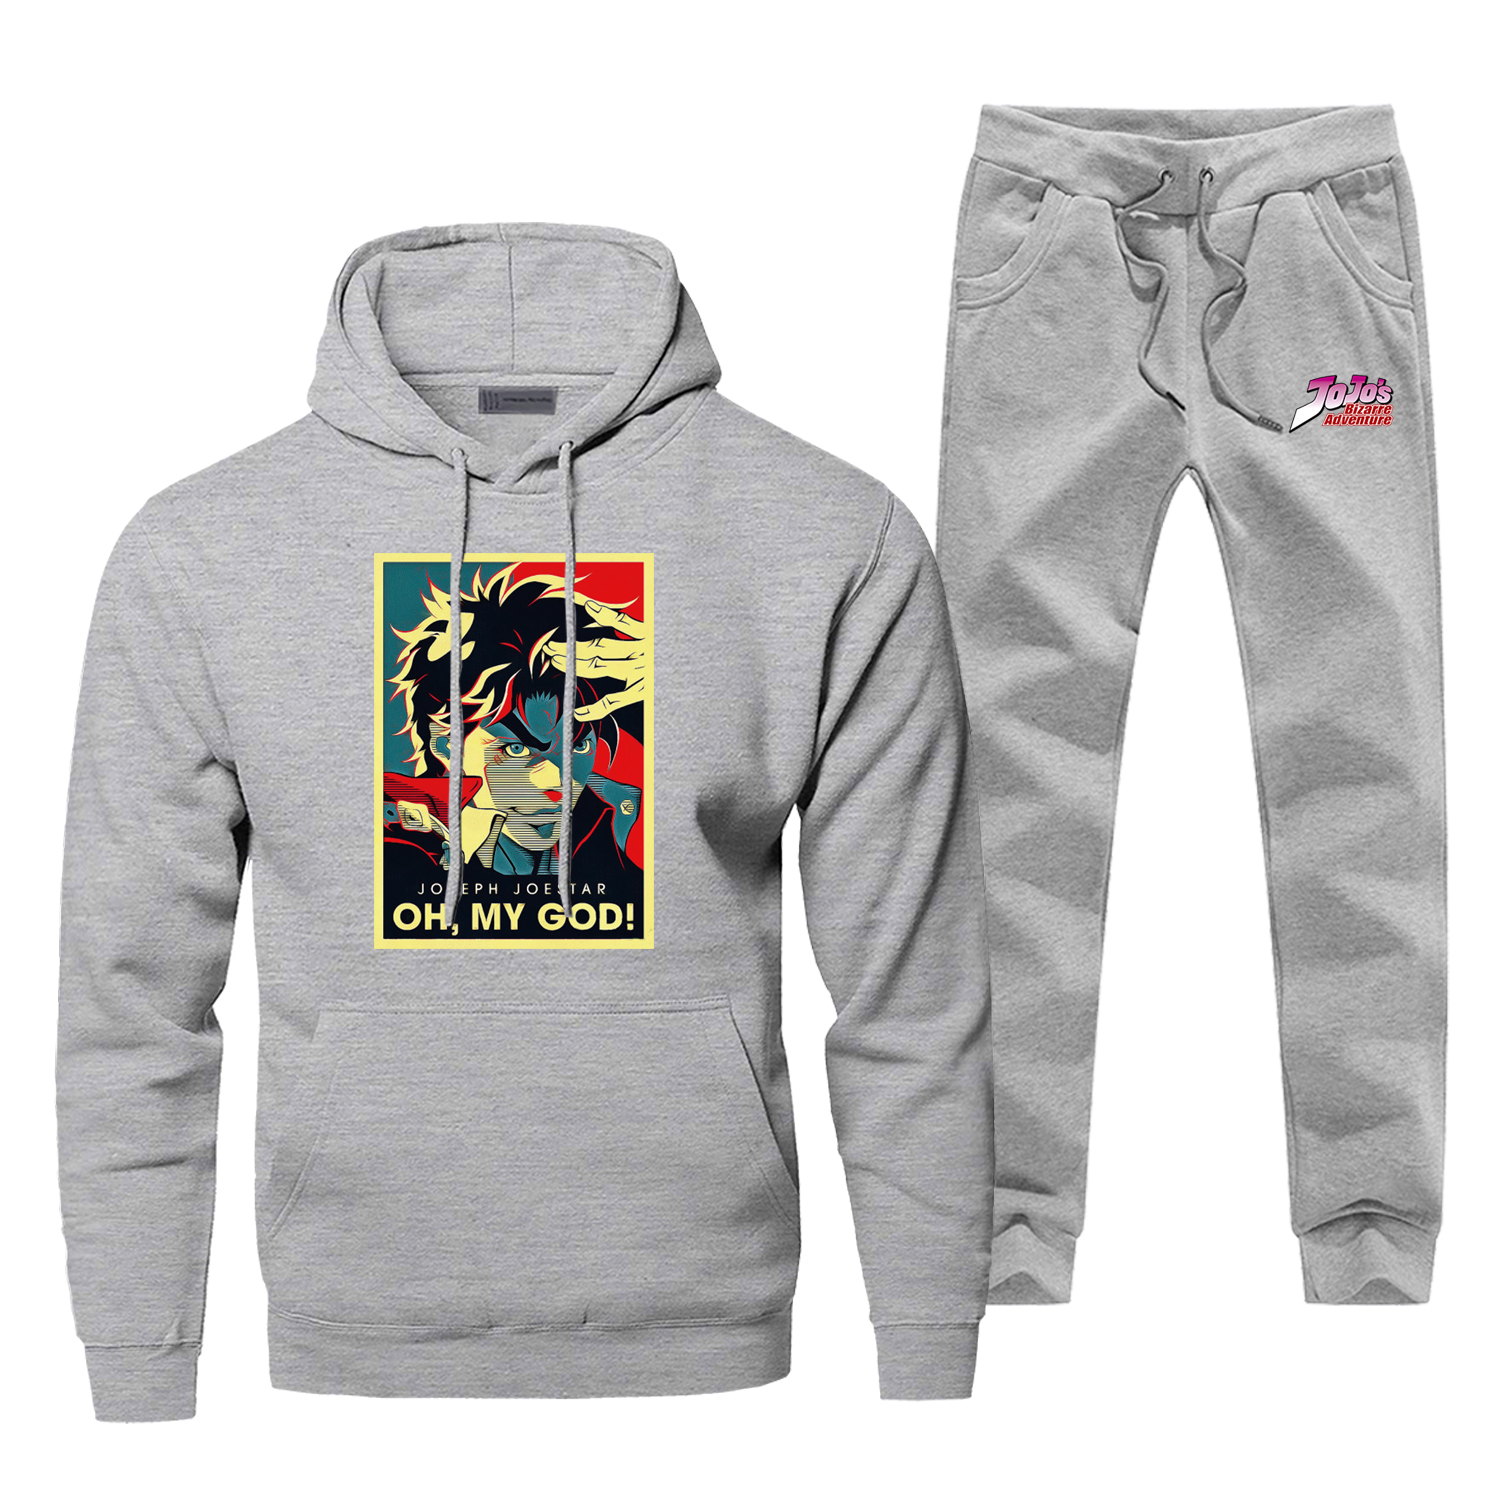 Jojo's Bizarre Adventure Print Men's Sets Oh My God Joseph Joestar Stand Power Hoodies Set Japan Anime Harajuku Pants Sweatshirt